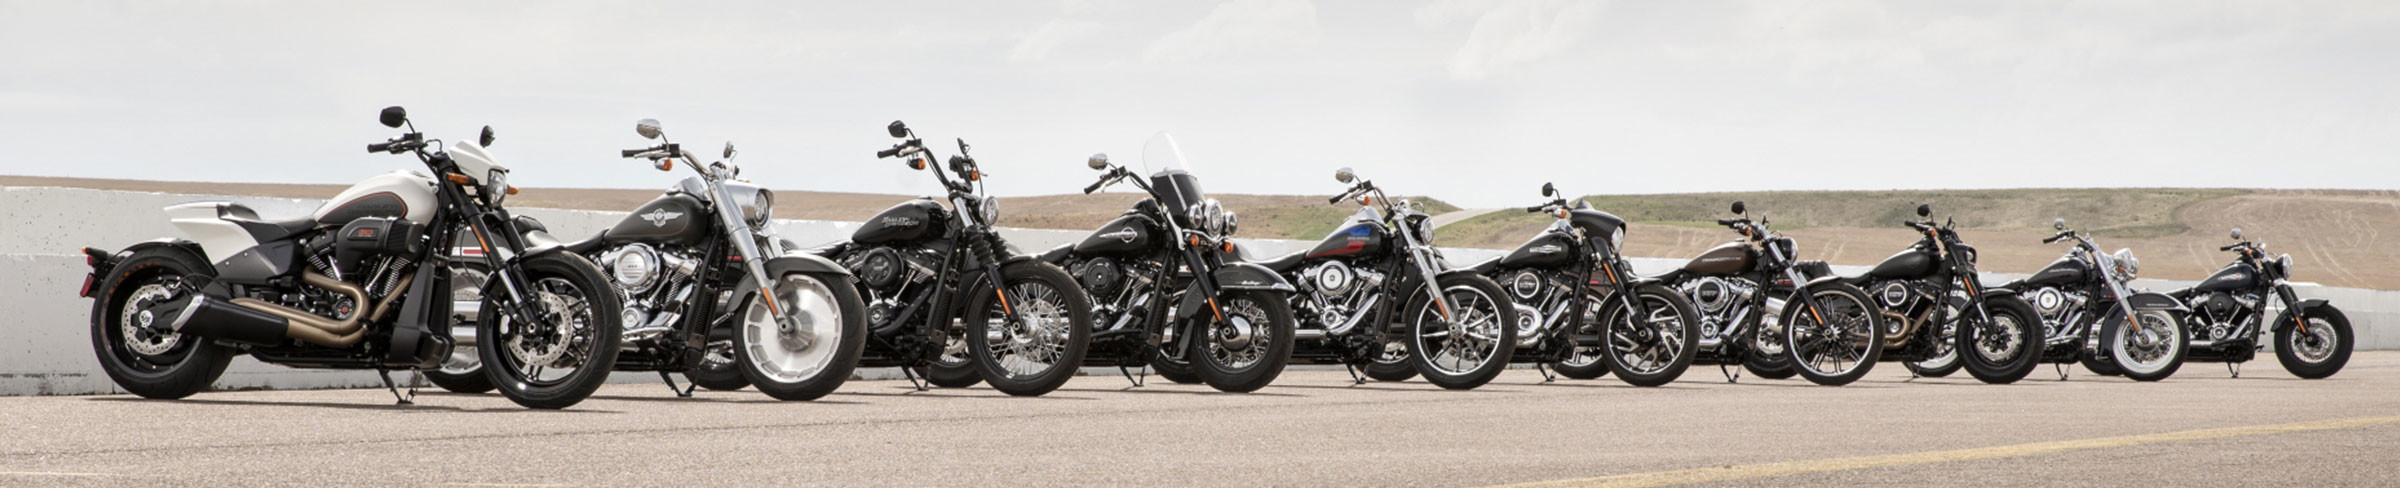 New Harley-Davidson® Motorcycles For Sale in Savannah, Georgia